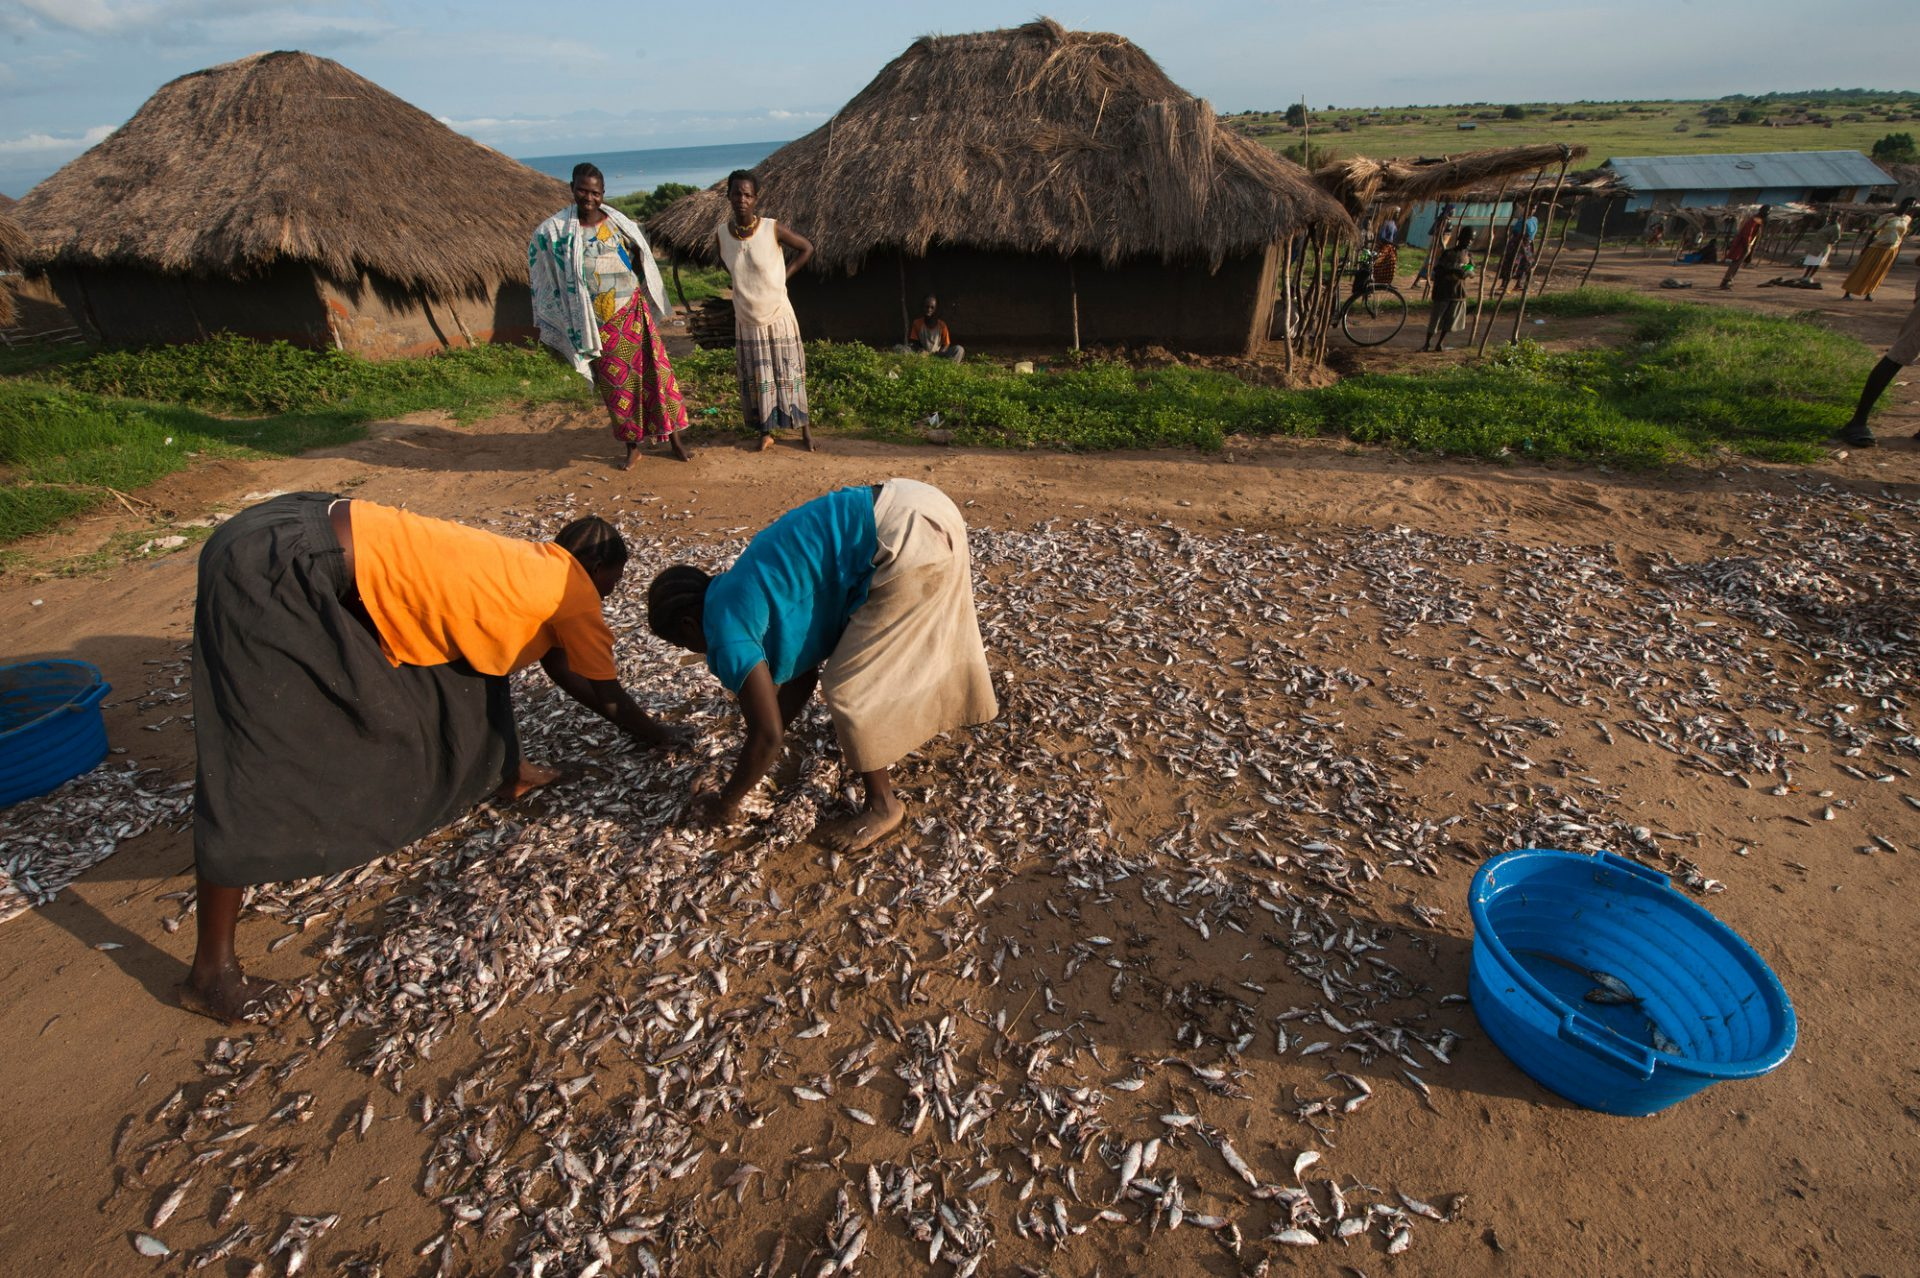 Photo: Locals dry carpenter fish in the sun to sell as animal feed.